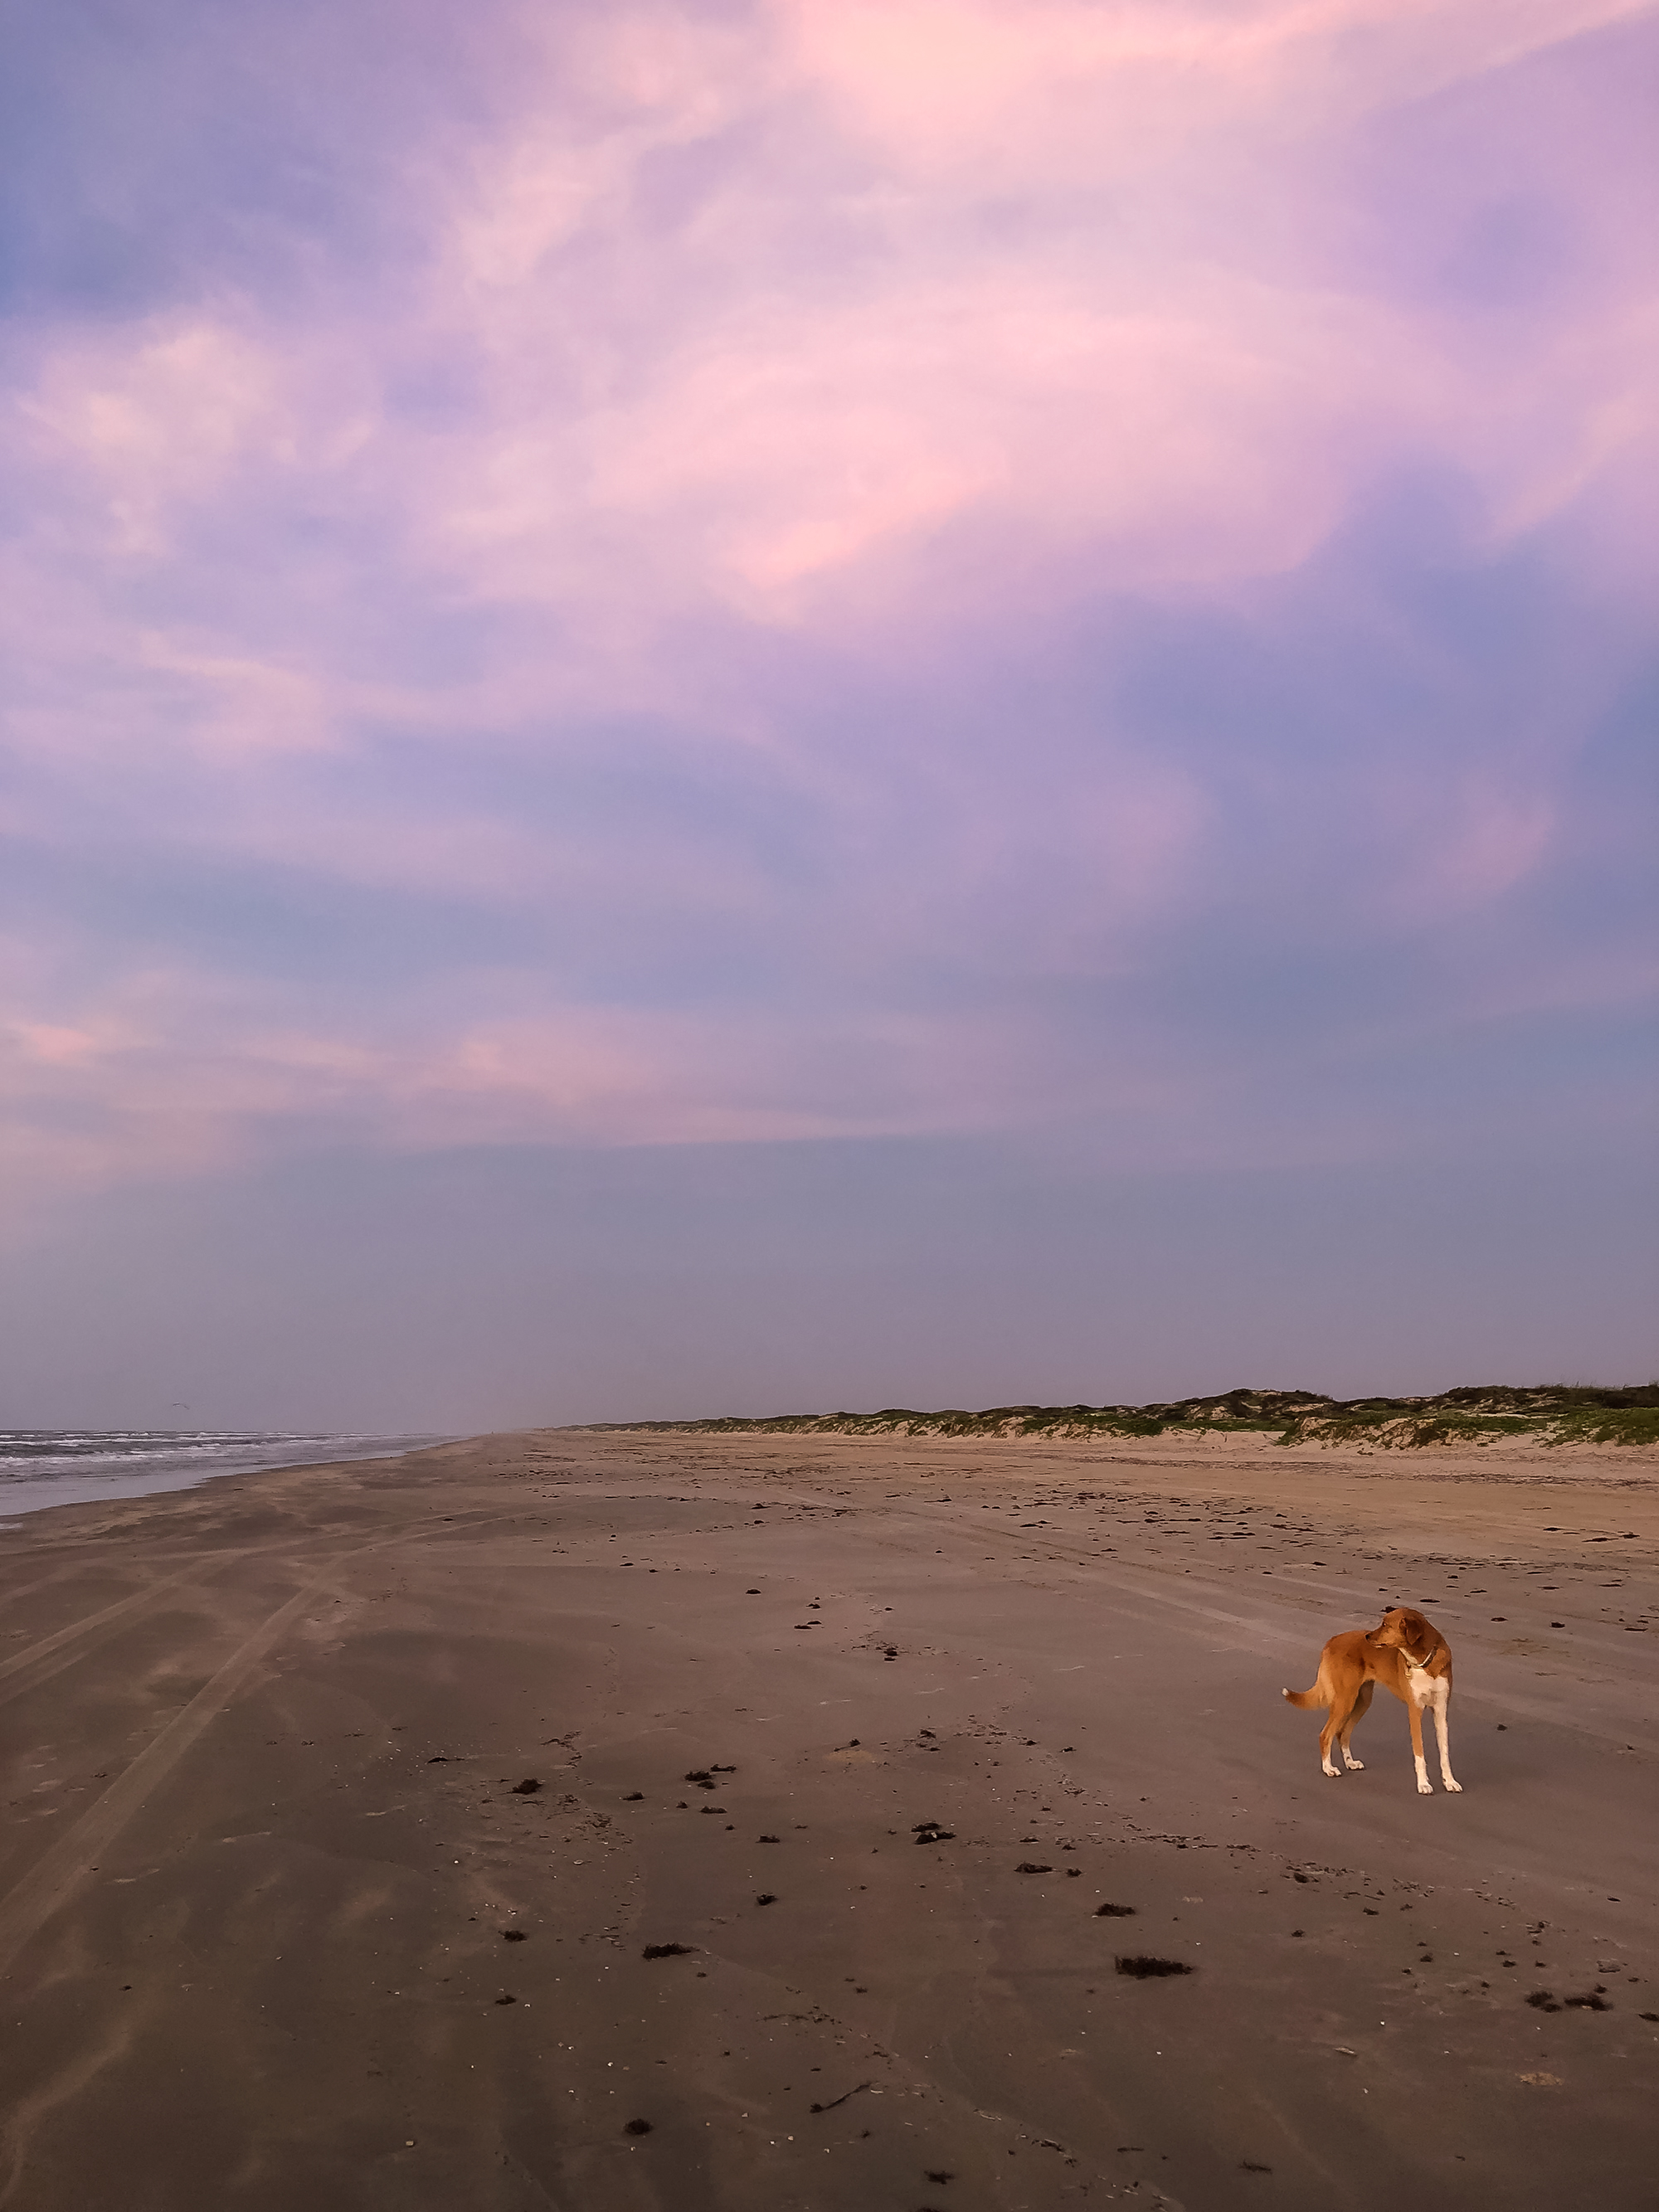 We had the beach to ourselves. | Padre Island National Seashore, Texas | June 2018